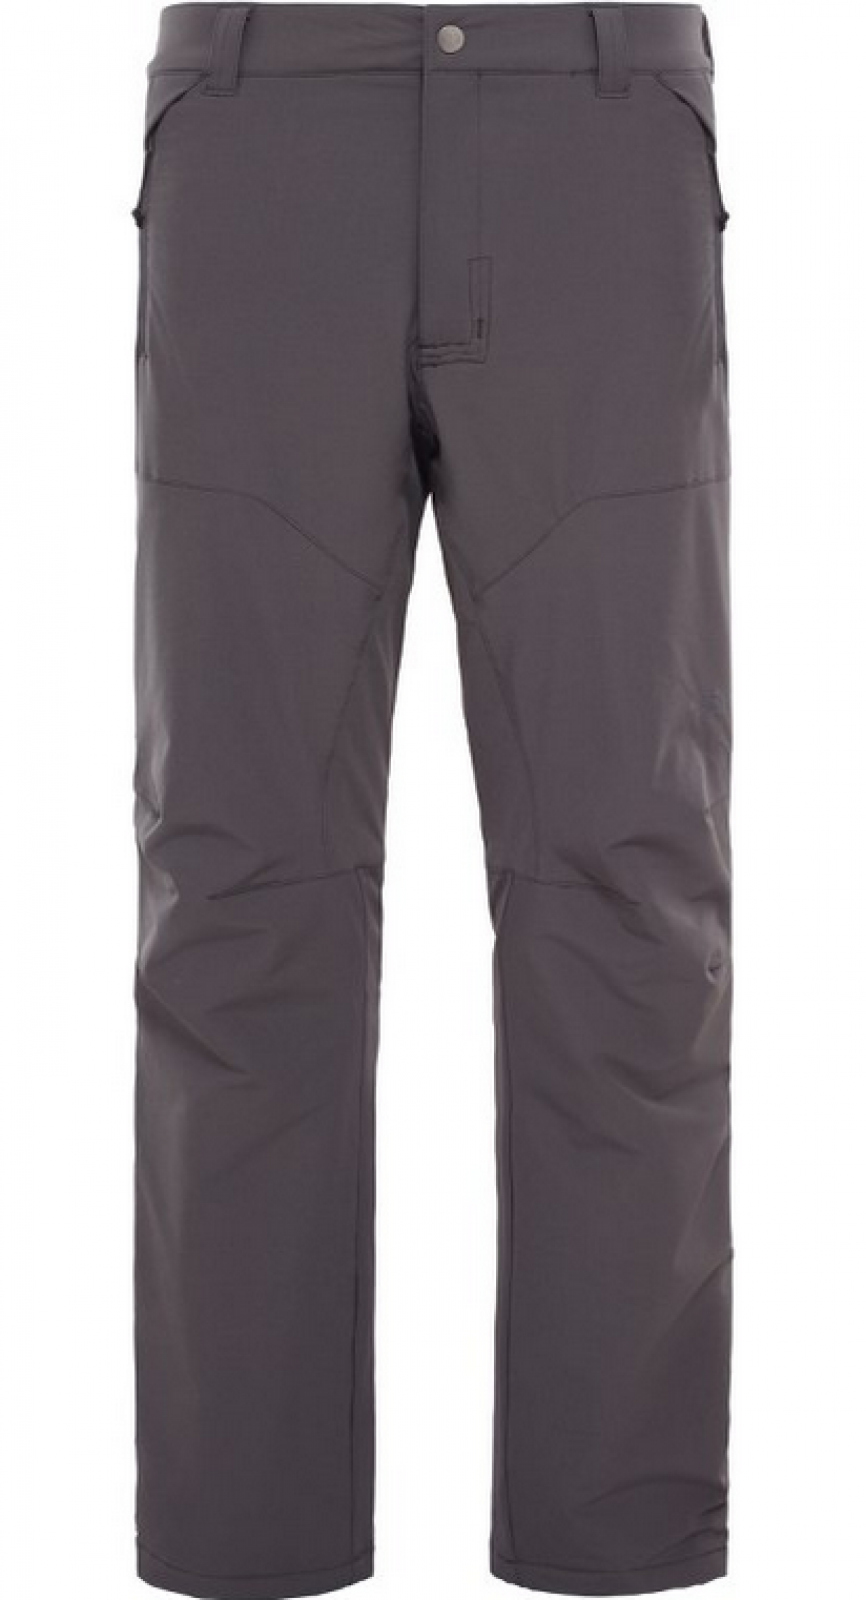 Брюки The North Face Ms Rutland Insulated Pant Муж. утепленные